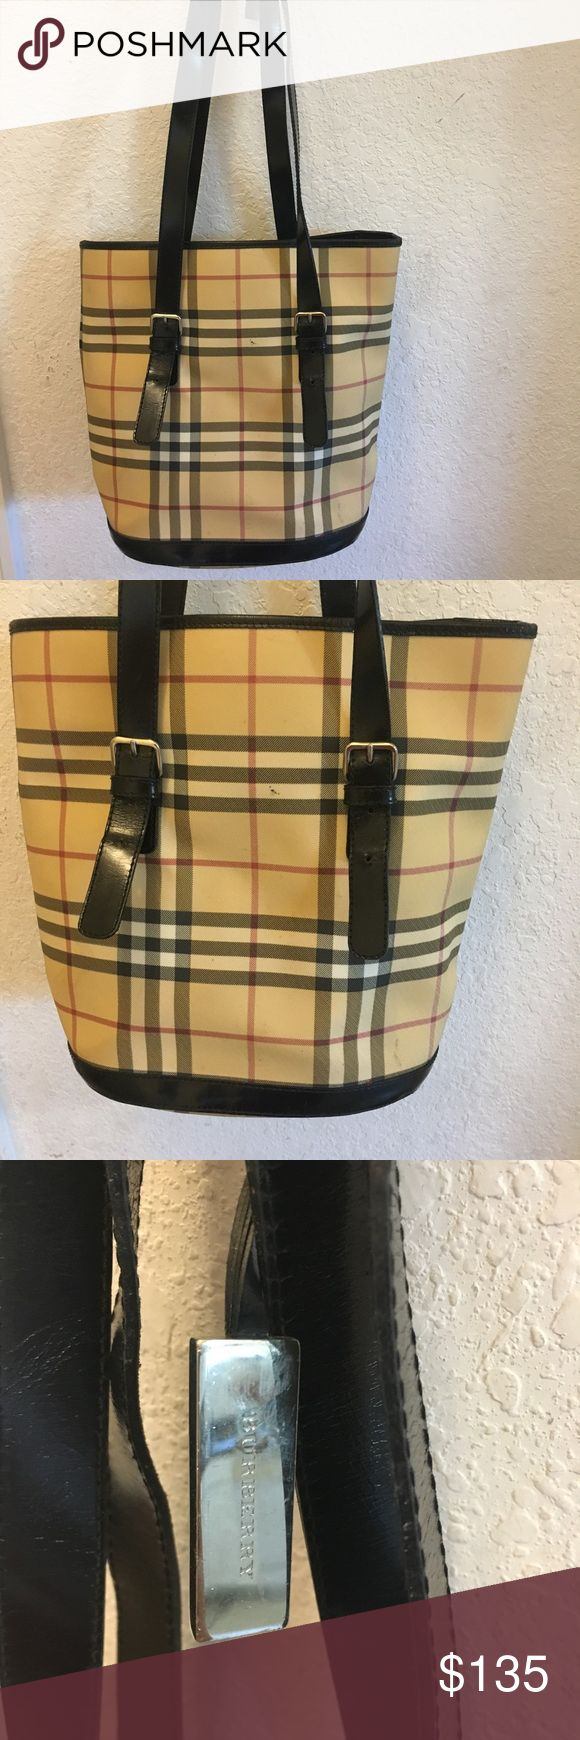 Authentic Burberry tote shoulder bag👛👠 Burberry tote